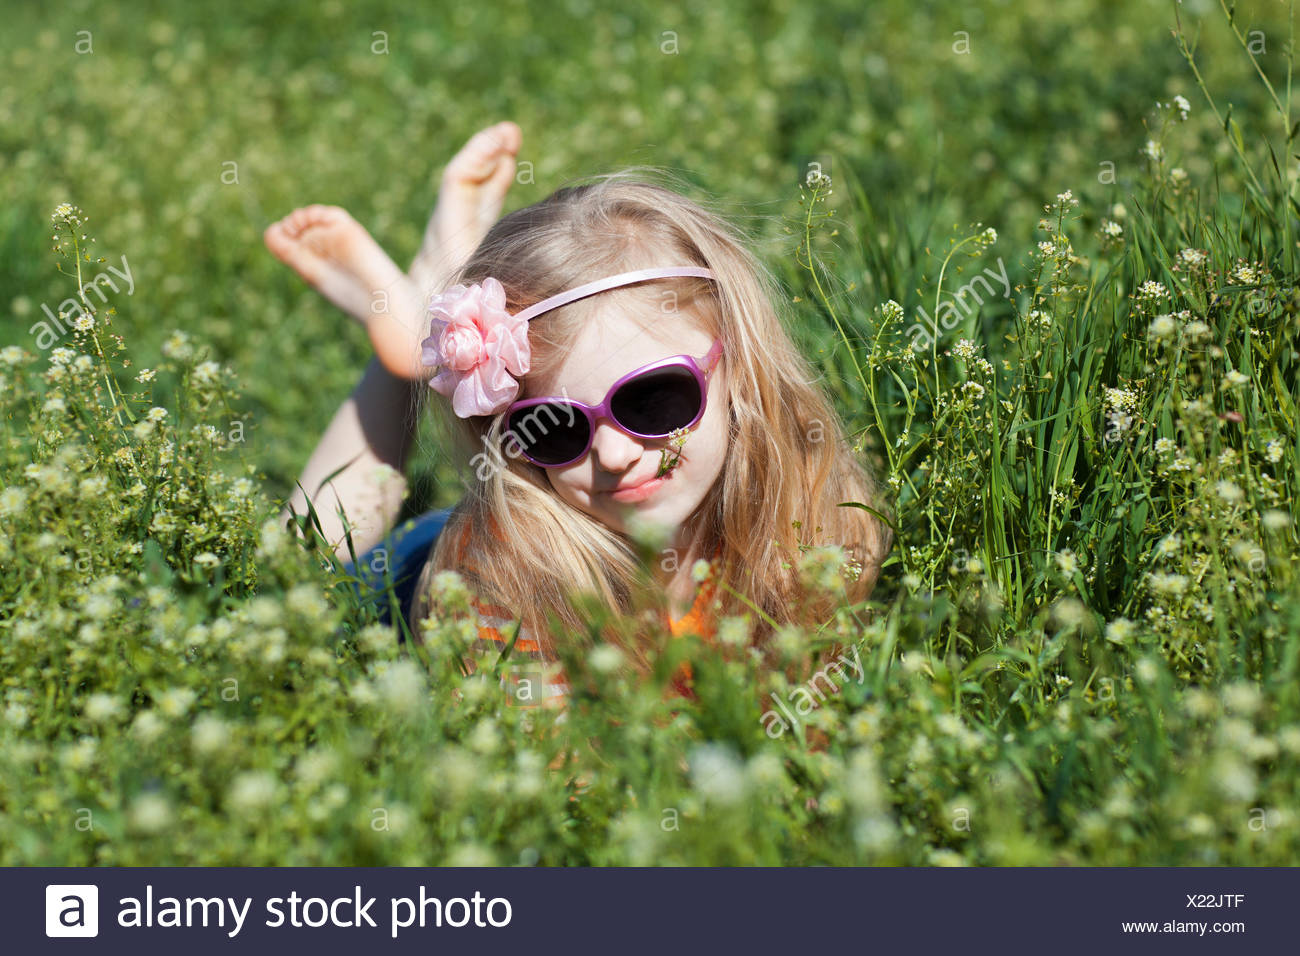 small barefooted girl in grass - Stock Image